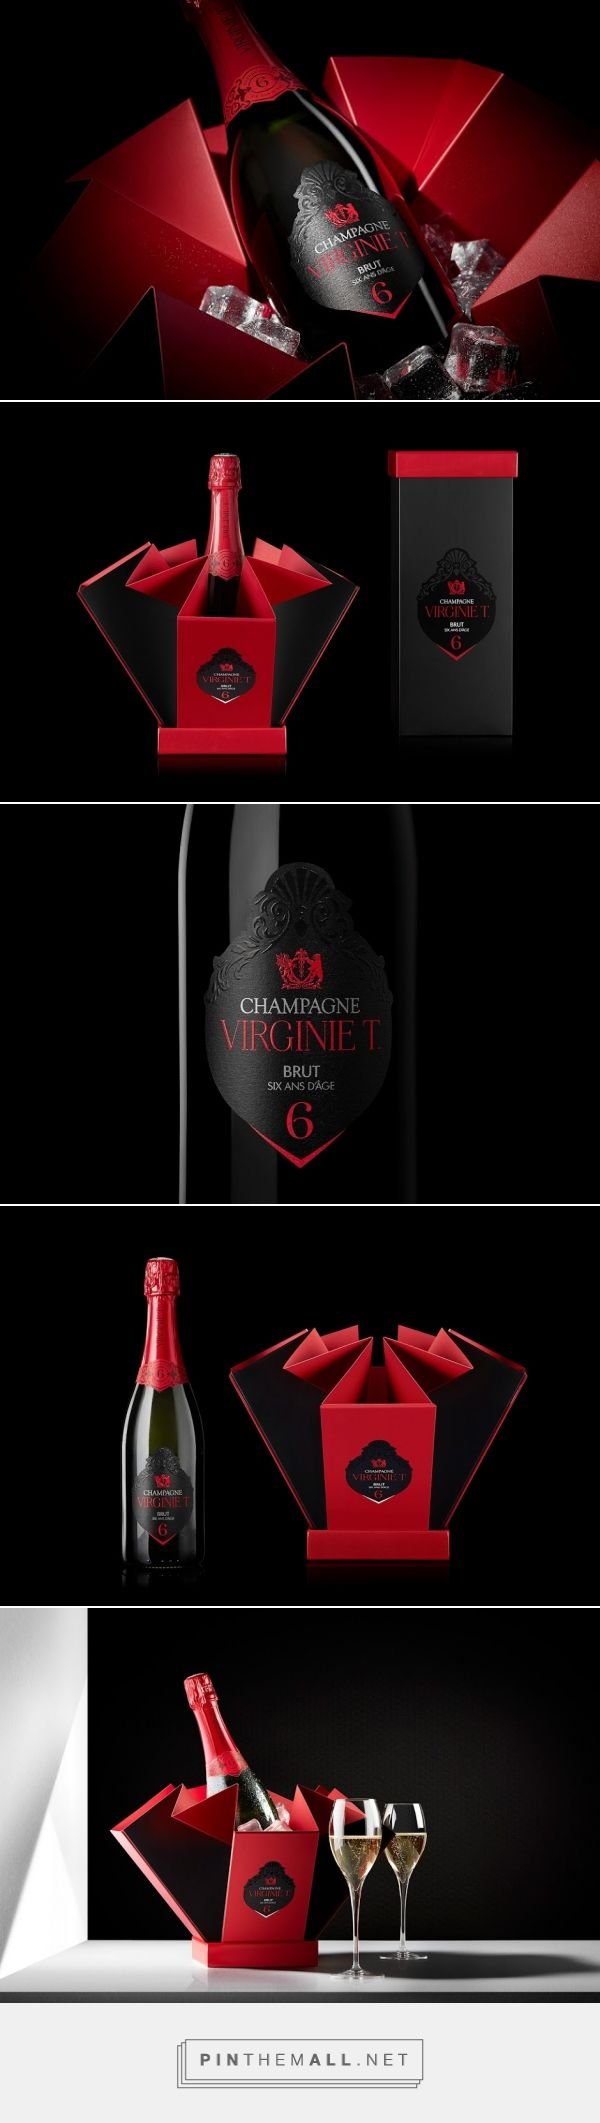 6 Year Old Vintage Virginie T. Champagne #packaging designed by 2S Global Design (France) - http://www.packagingoftheworld.com/2016/02/six-year-old-vintage-virginie-t.html